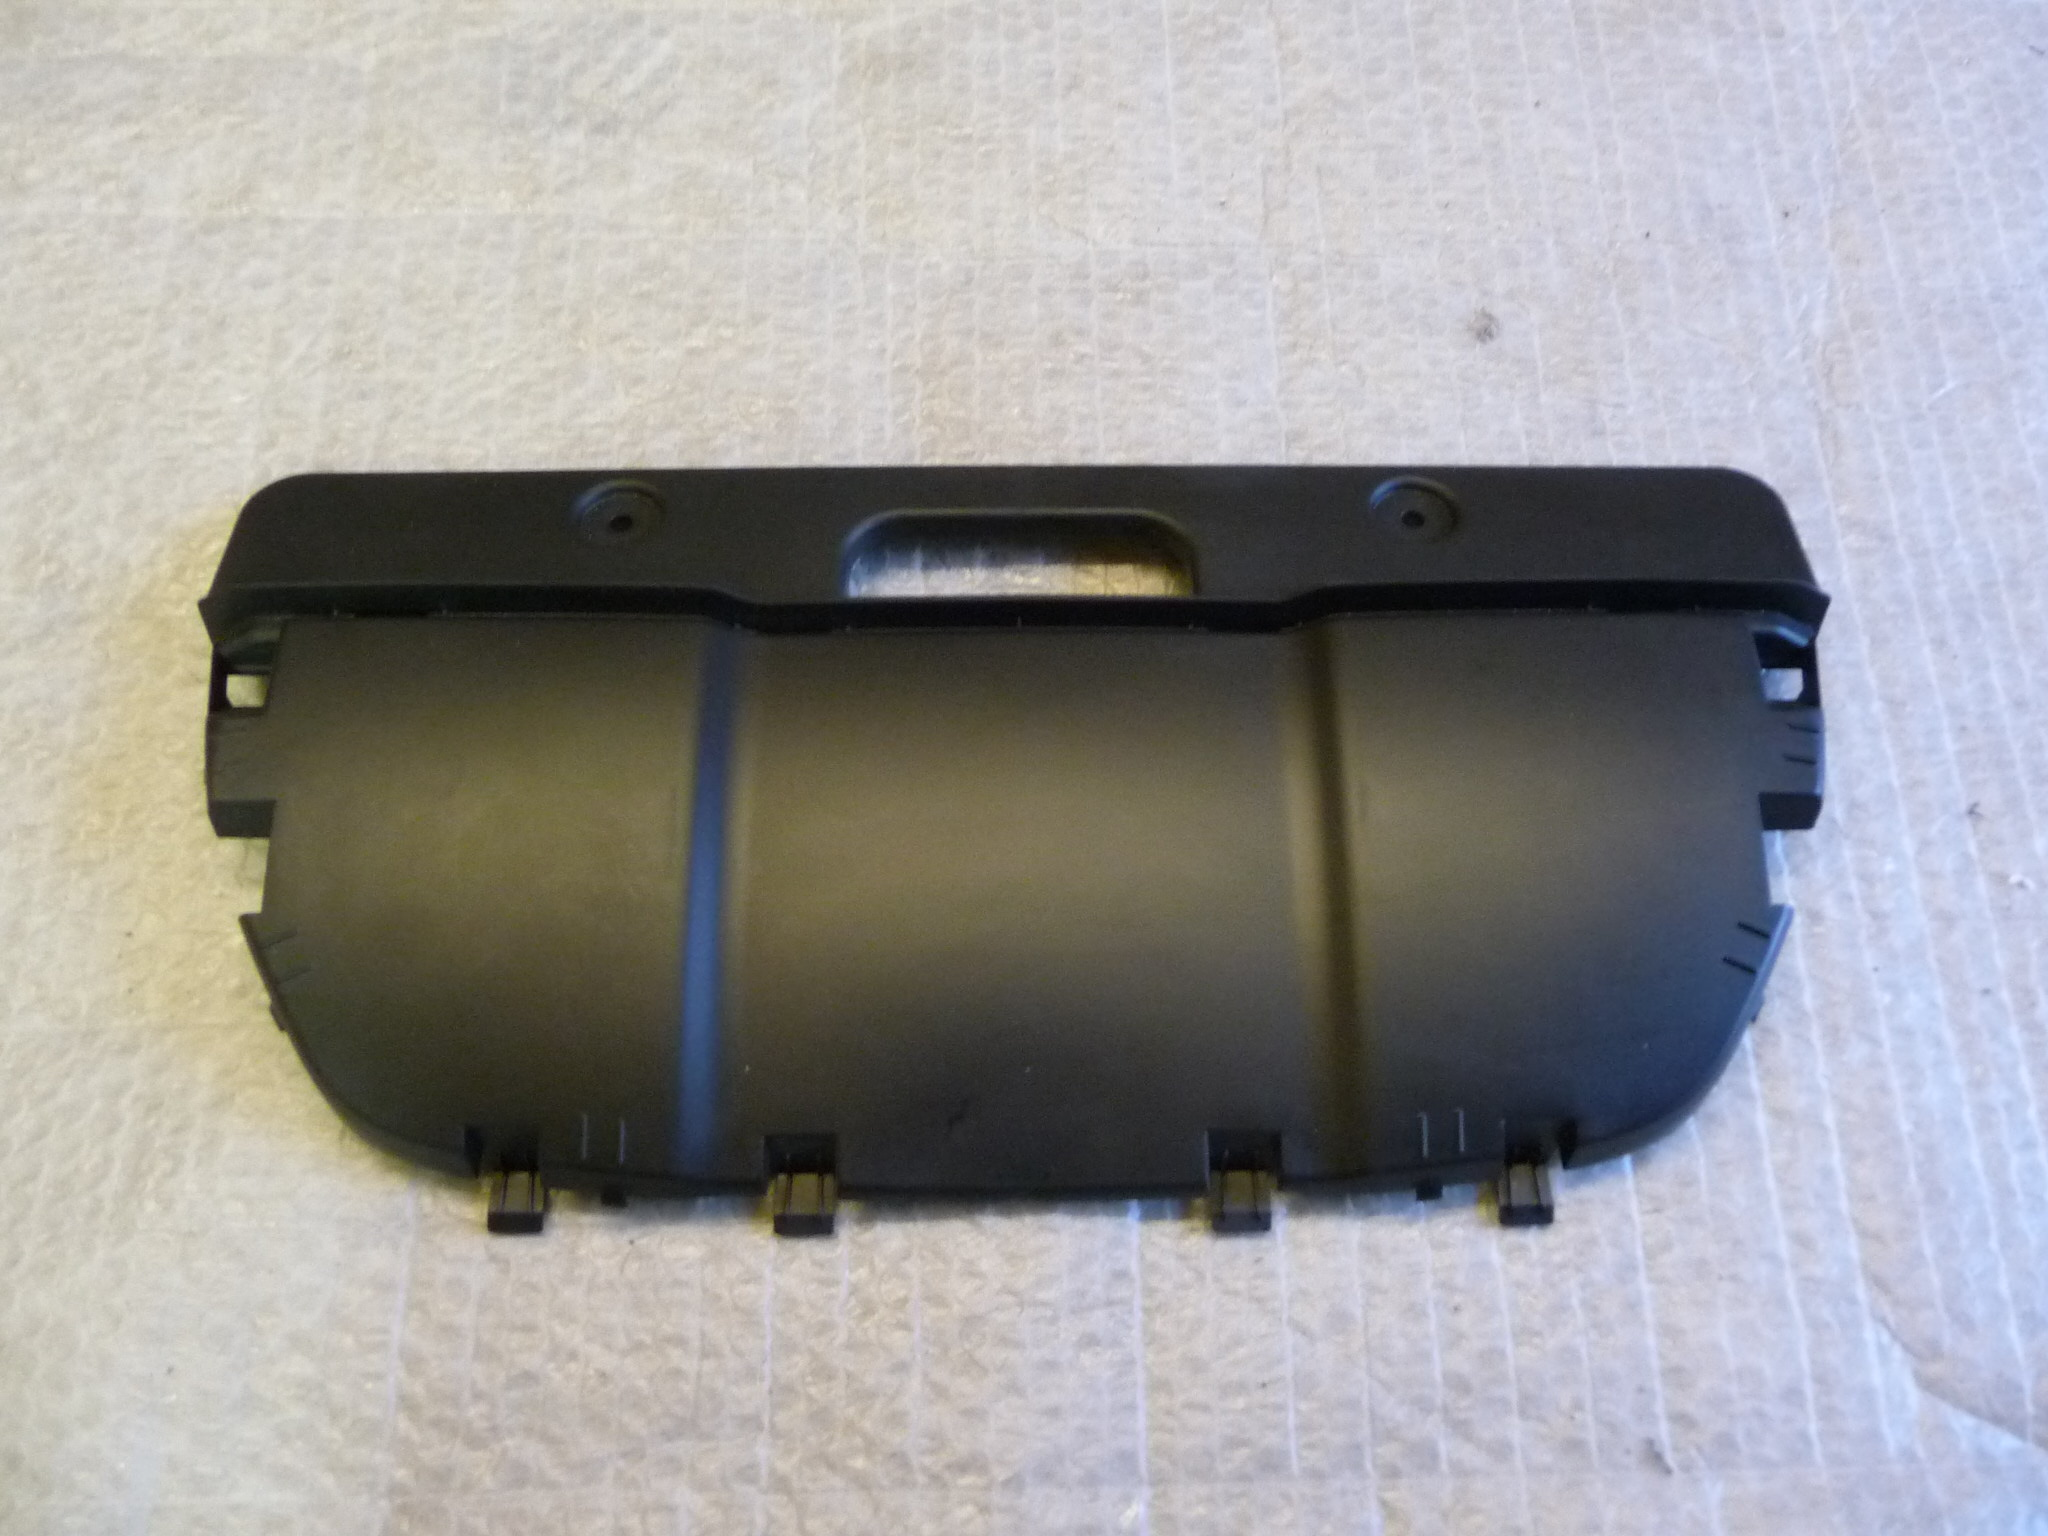 2014 2015 Mercedes Benz W166 AMG ML350 Rear Bumper Tow Hitch Cover A1668852424 OEM OE